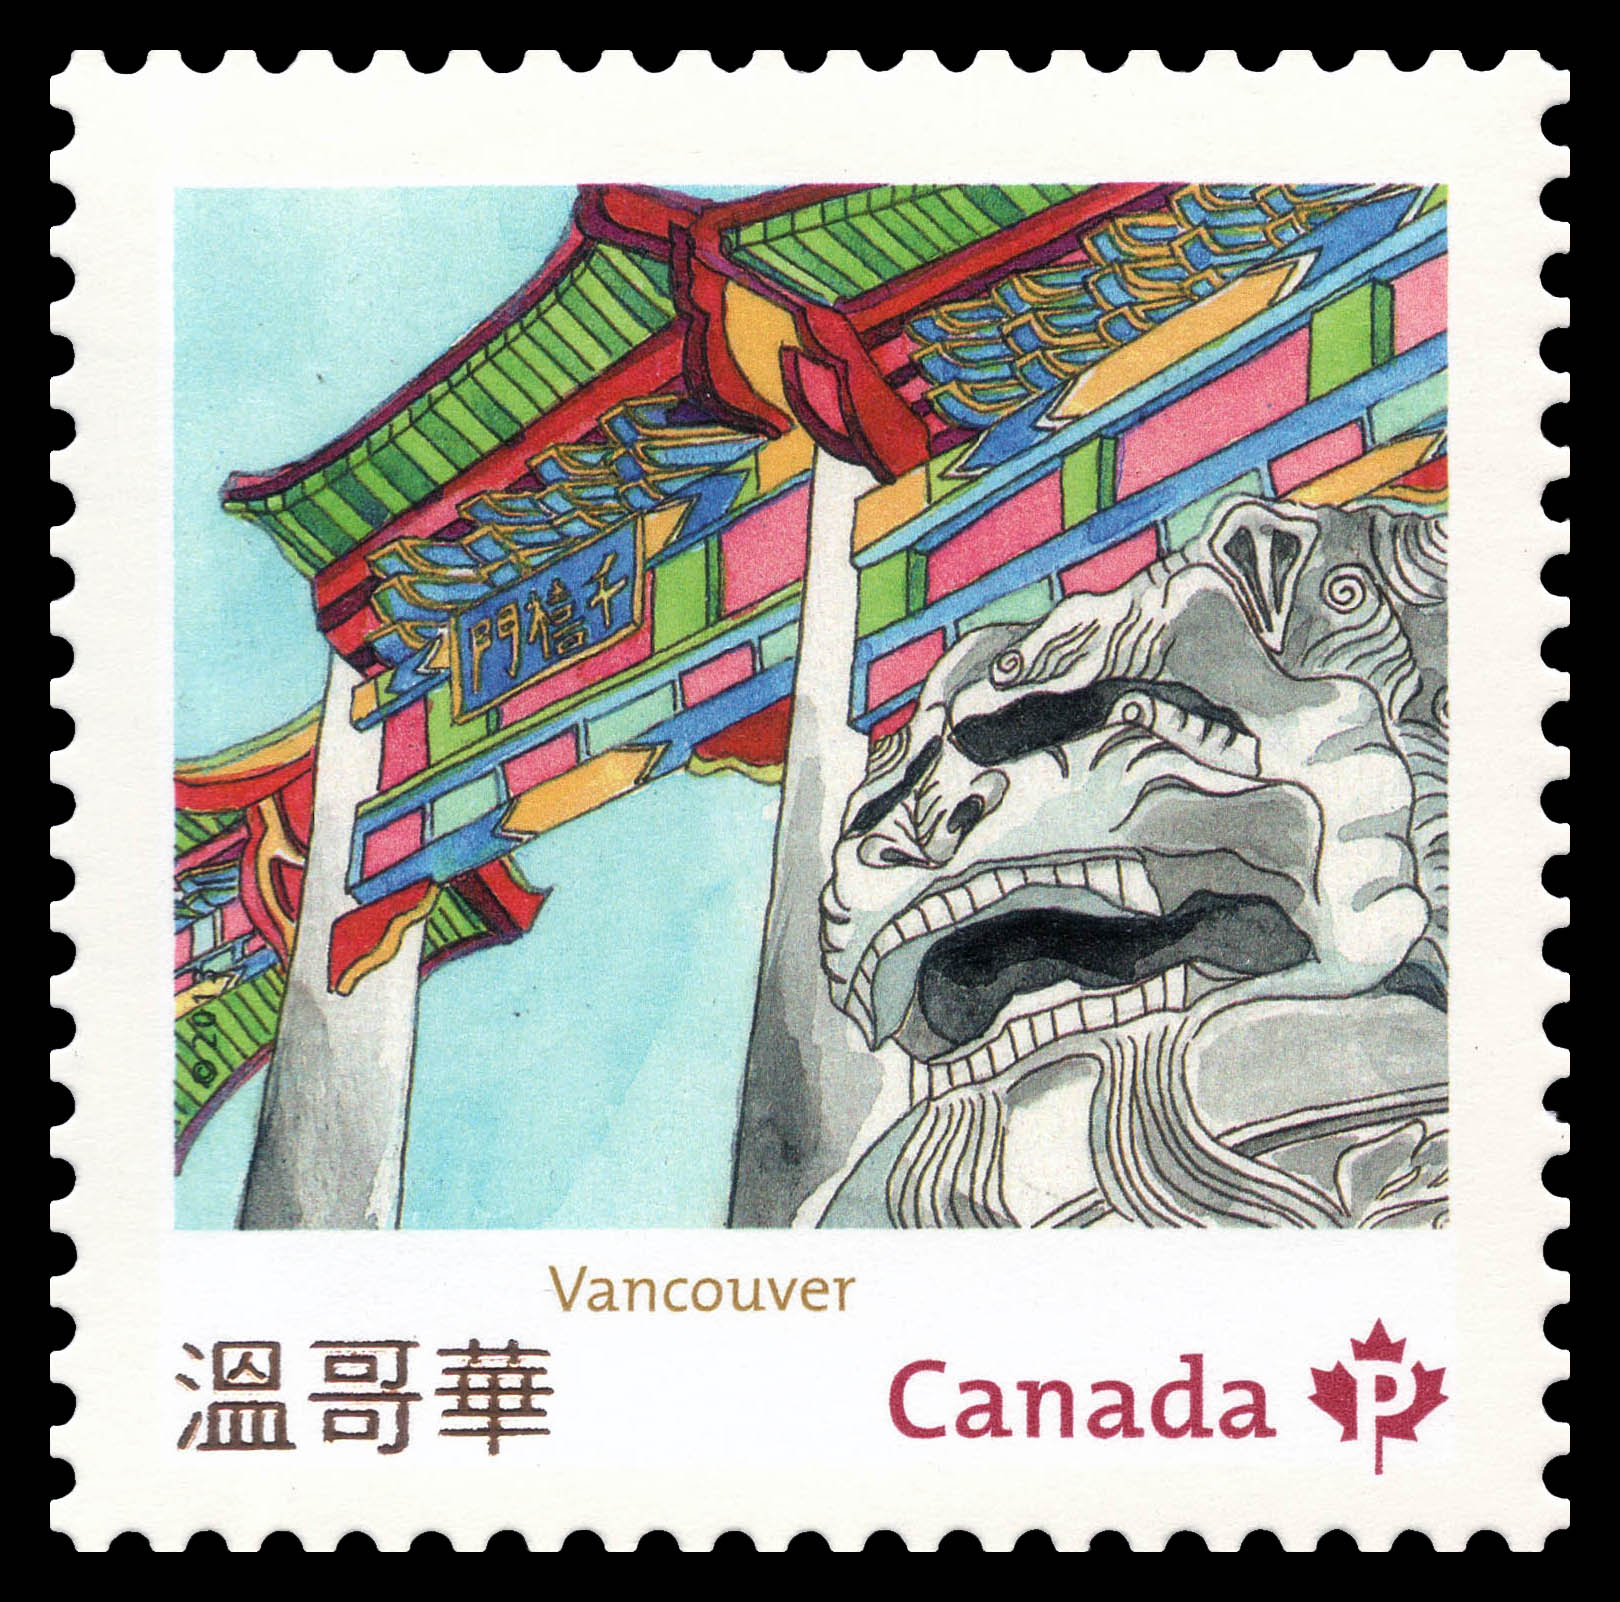 Vancouver Chinatown Gate Canada Postage Stamp | Chinatown Gates